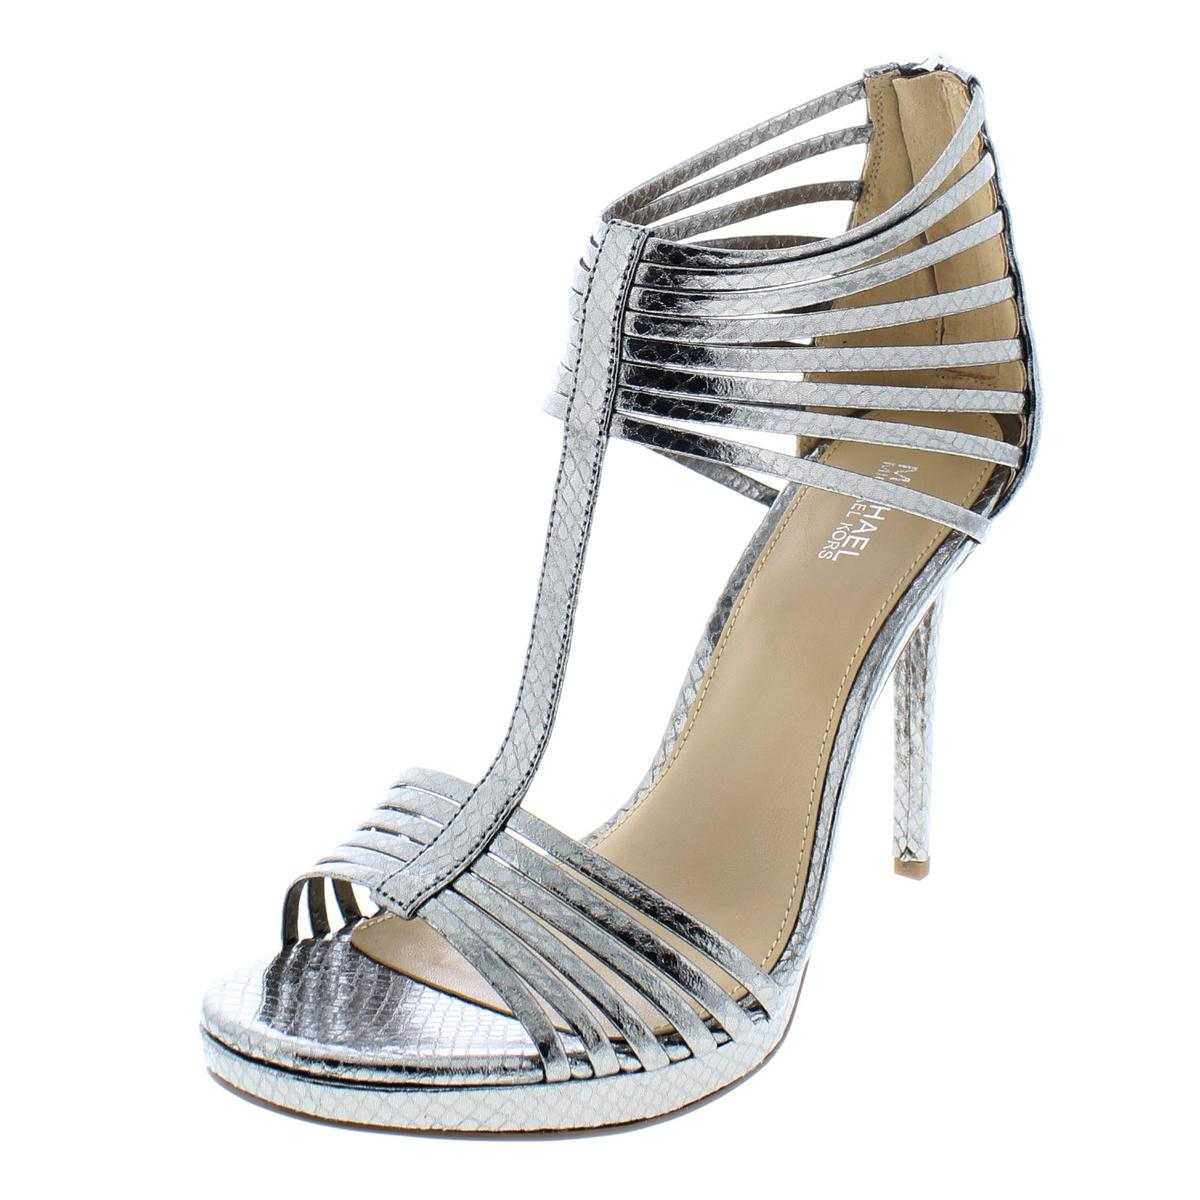 a87531881 Details about MICHAEL Michael Kors Womens Leann Leather Heels Evening  Sandals Shoes BHFO 8326